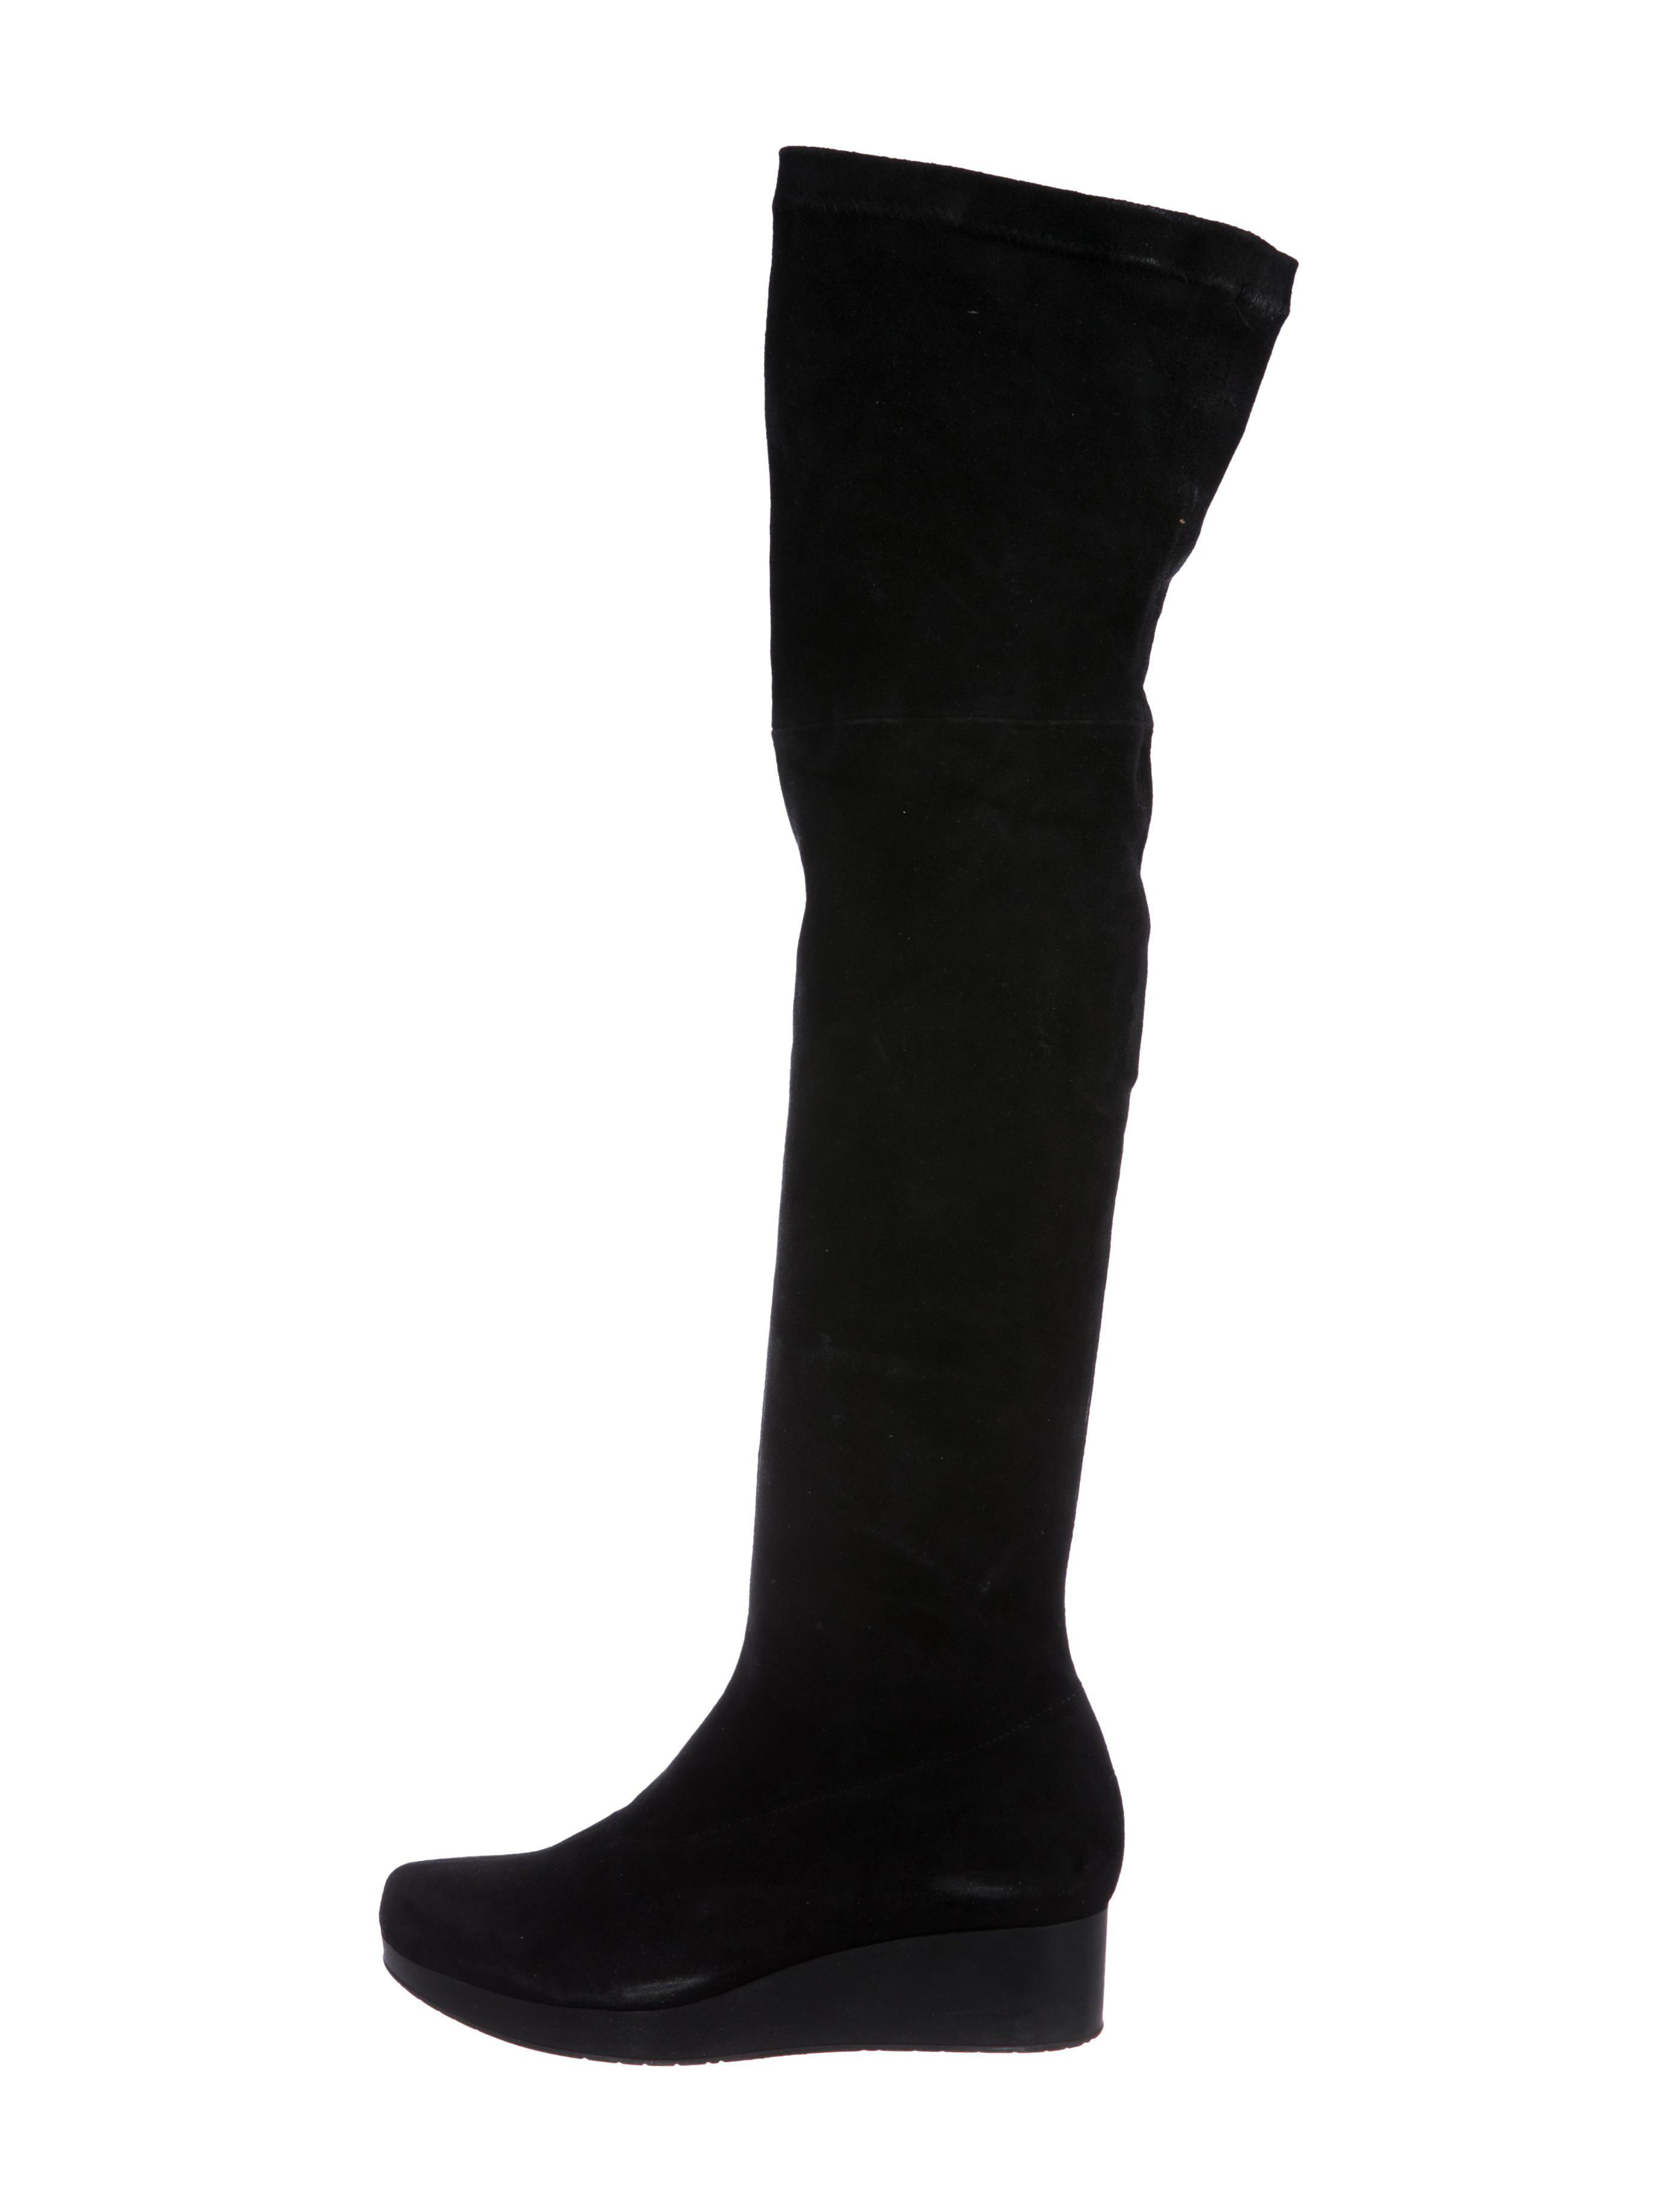 buy cheap from china extremely sale online Robert Clergerie Clergerie Paris Fur Knee-High Boots w/ Tags 100% guaranteed sale online N9kZJjSBCz